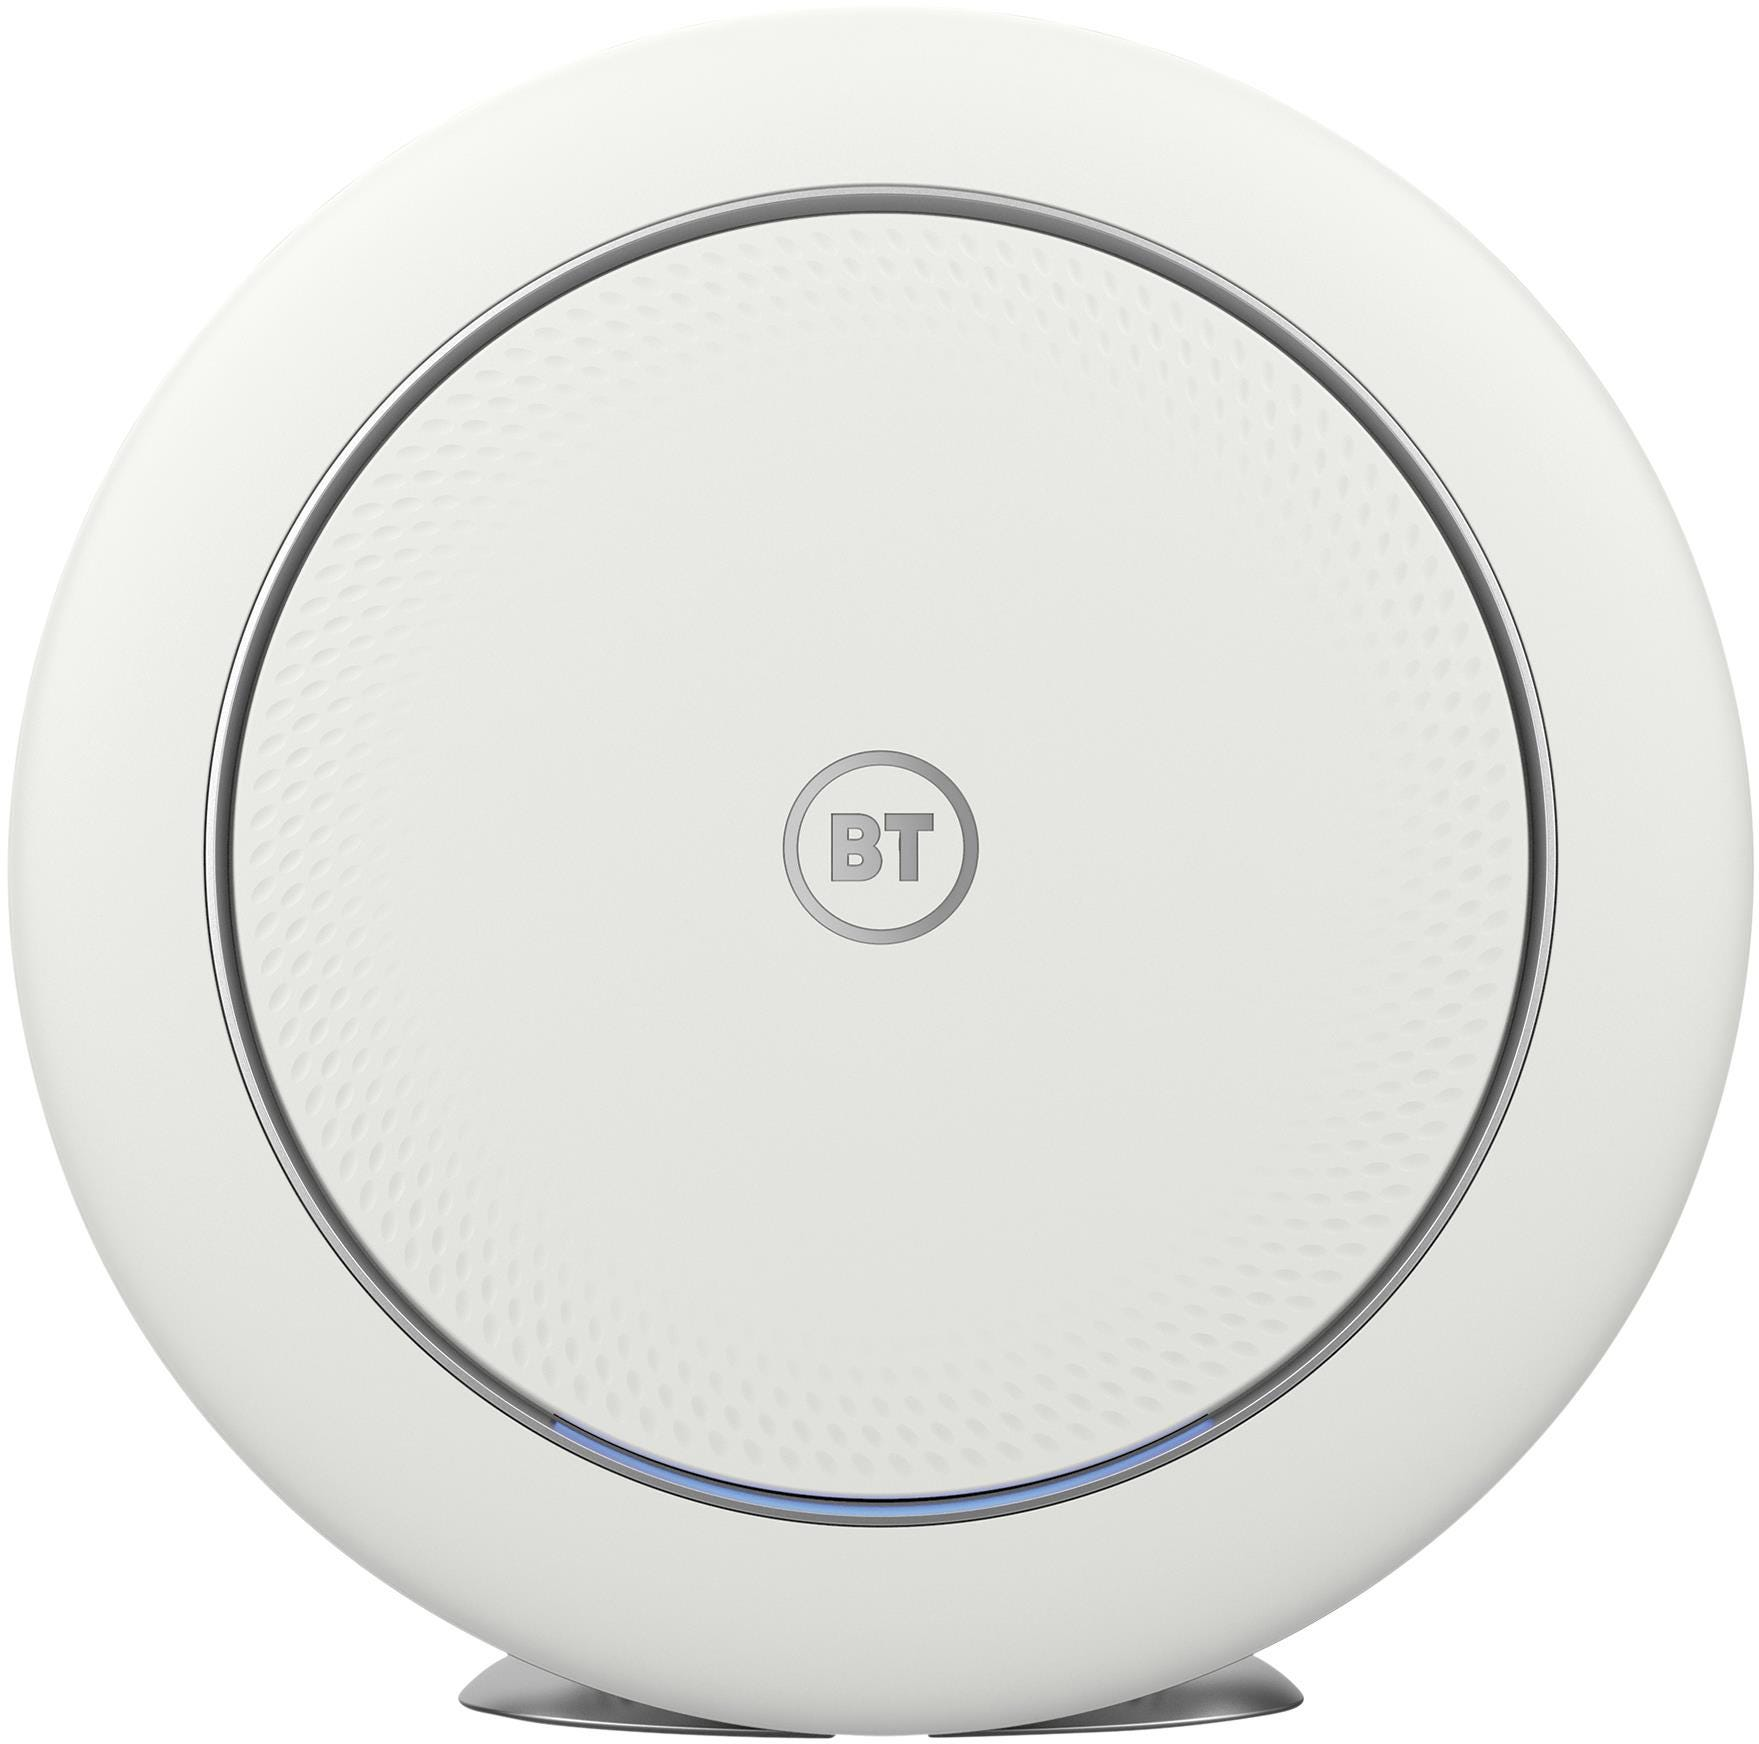 BT Premium Whole Home WiFi System Add-On